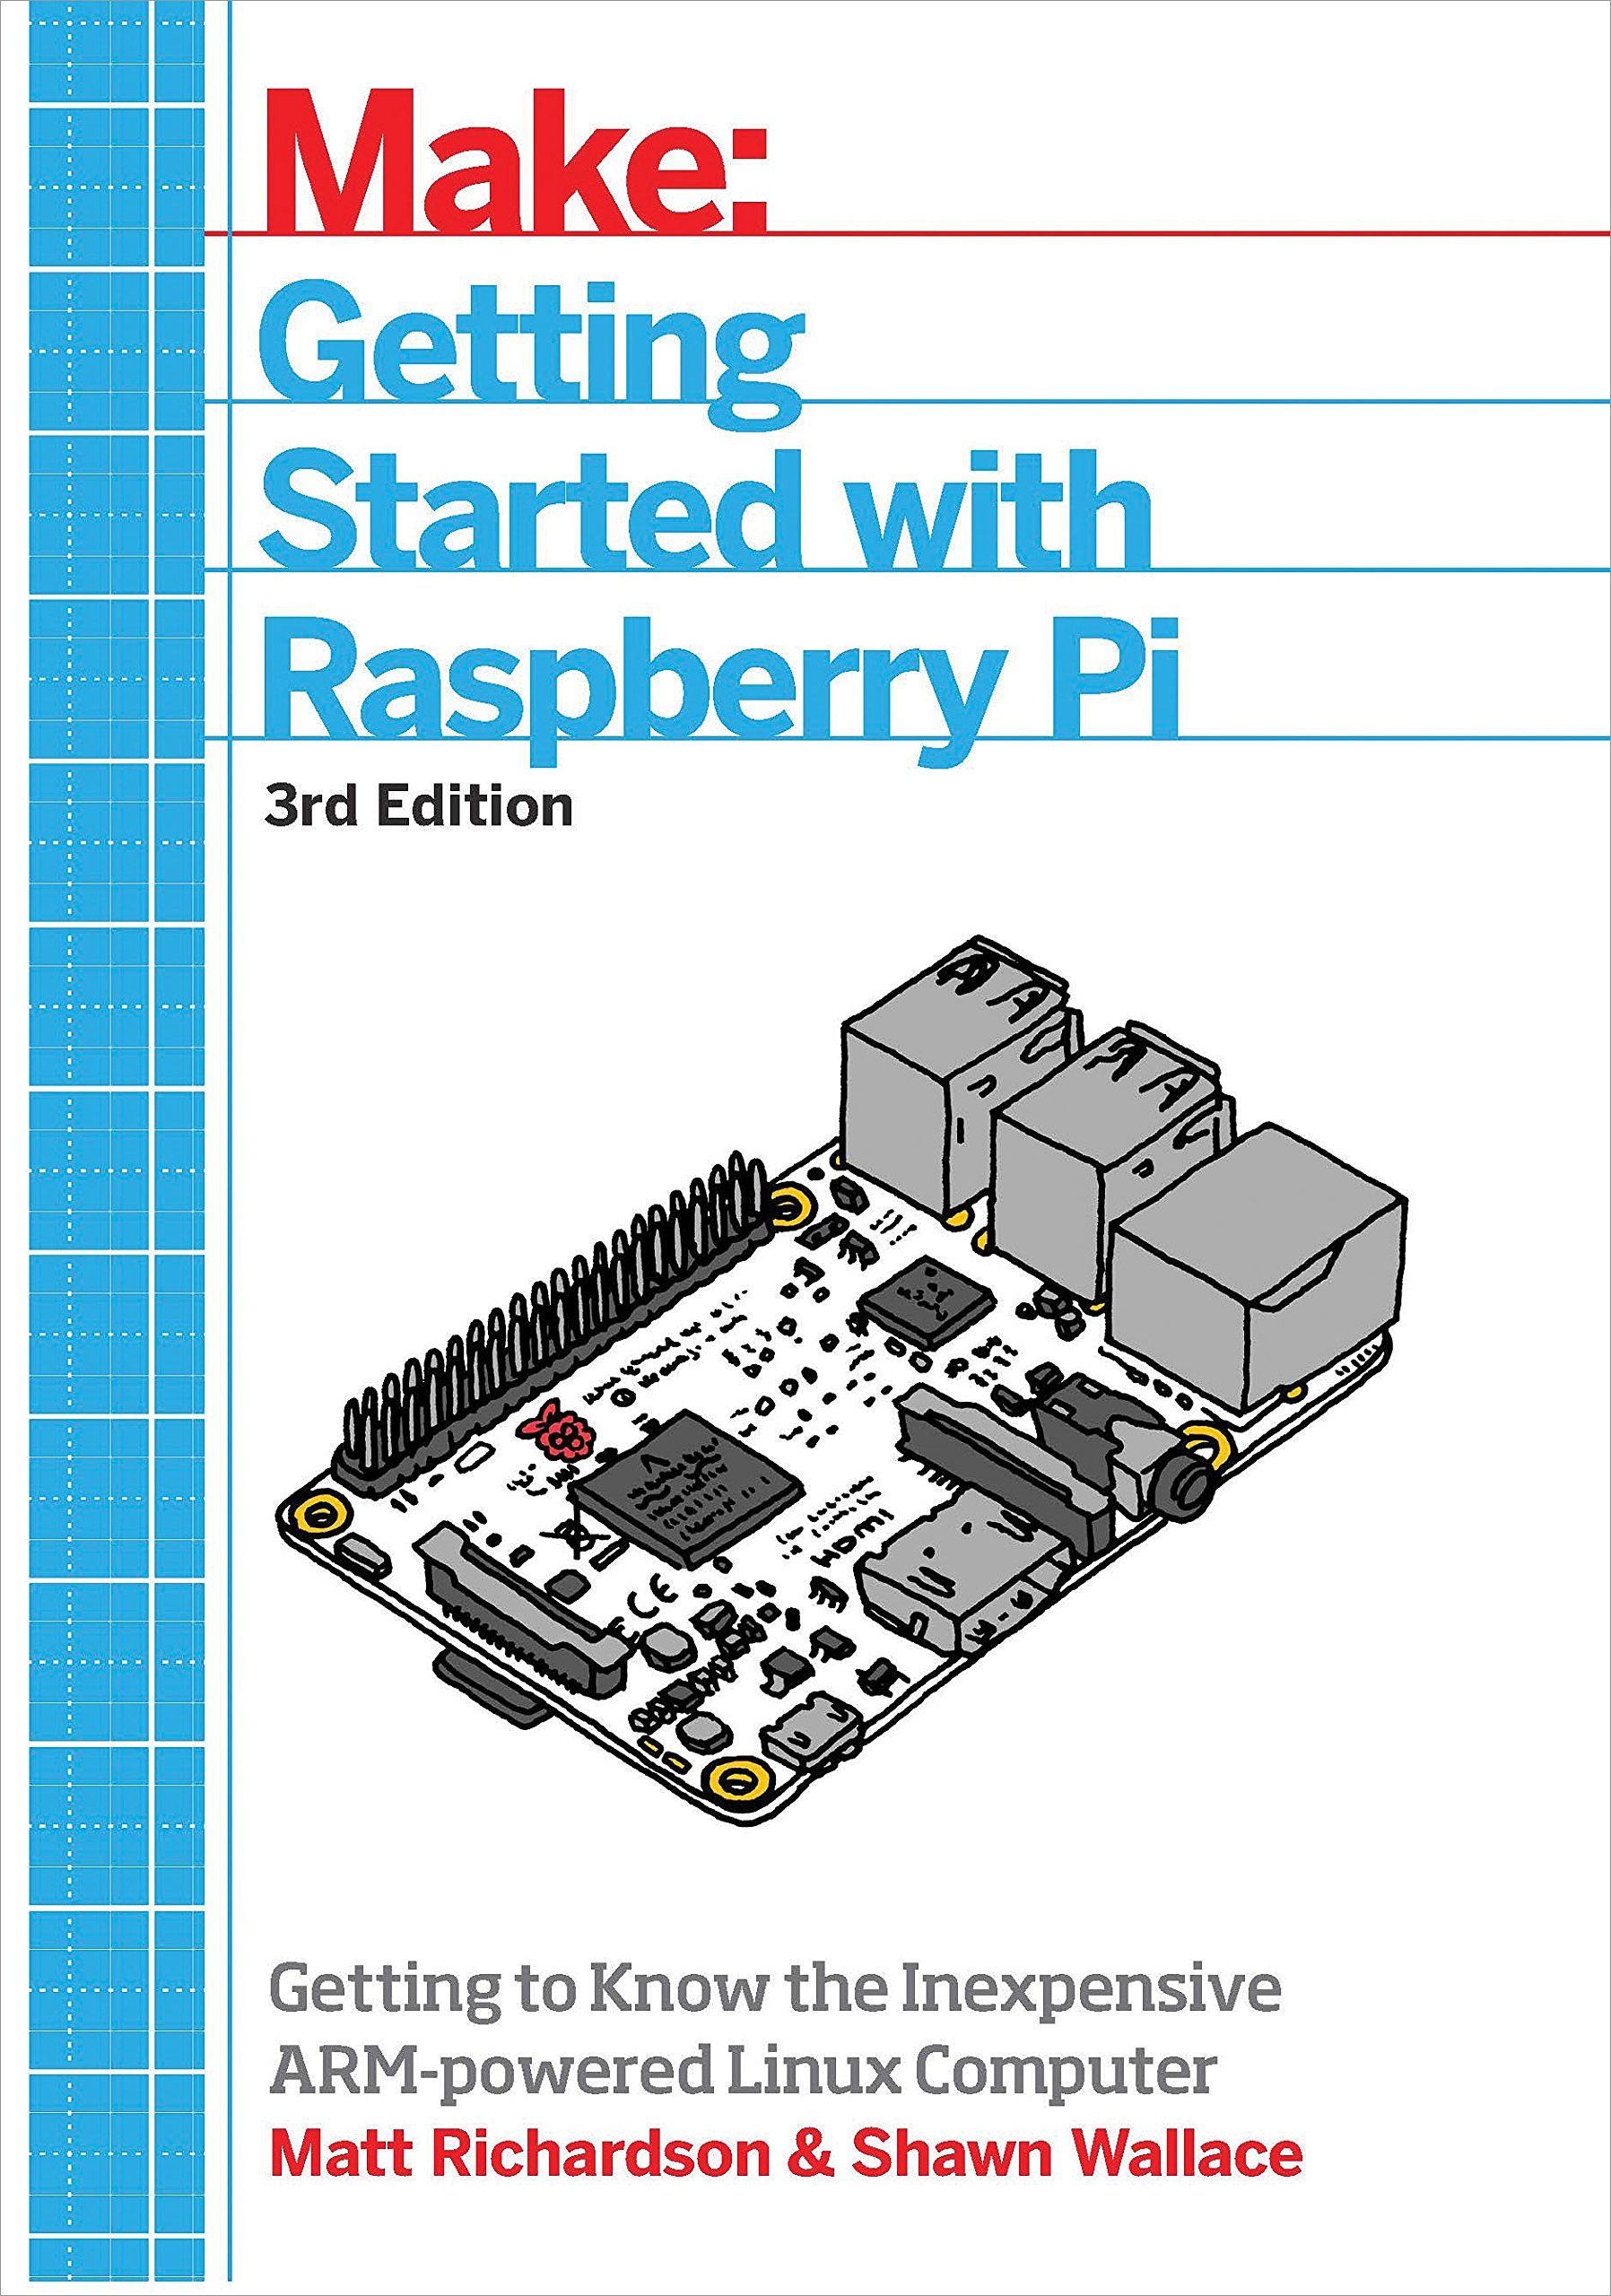 Getting Started With Raspberry Pi: An Introduction to the Fastest-Selling Computer in the World by O'Reilly Media